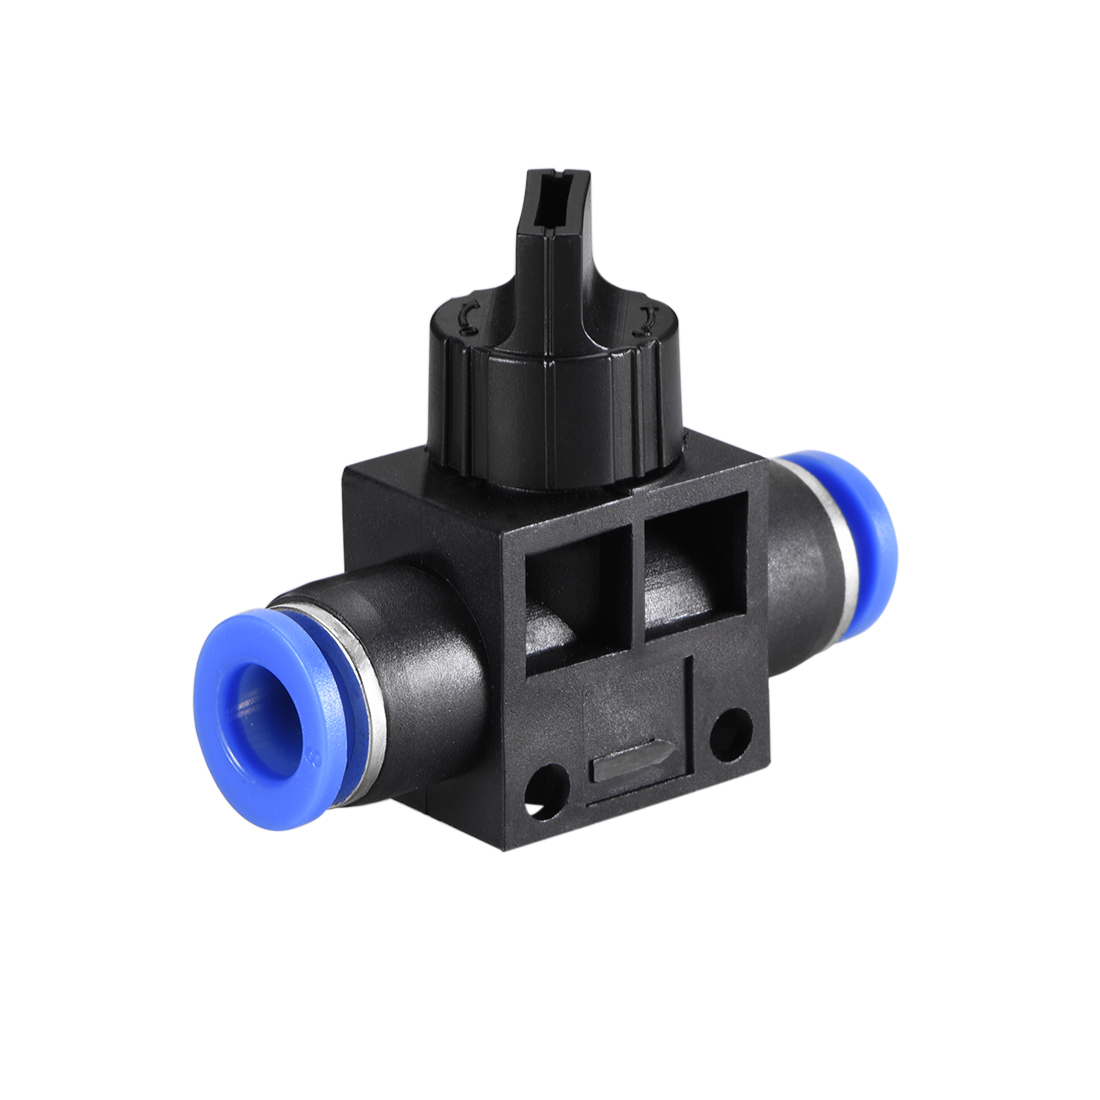 """Air Flow Control Valve Connect Fitting, 5/16"""" OD  Speed Controller - image 4 of 4"""